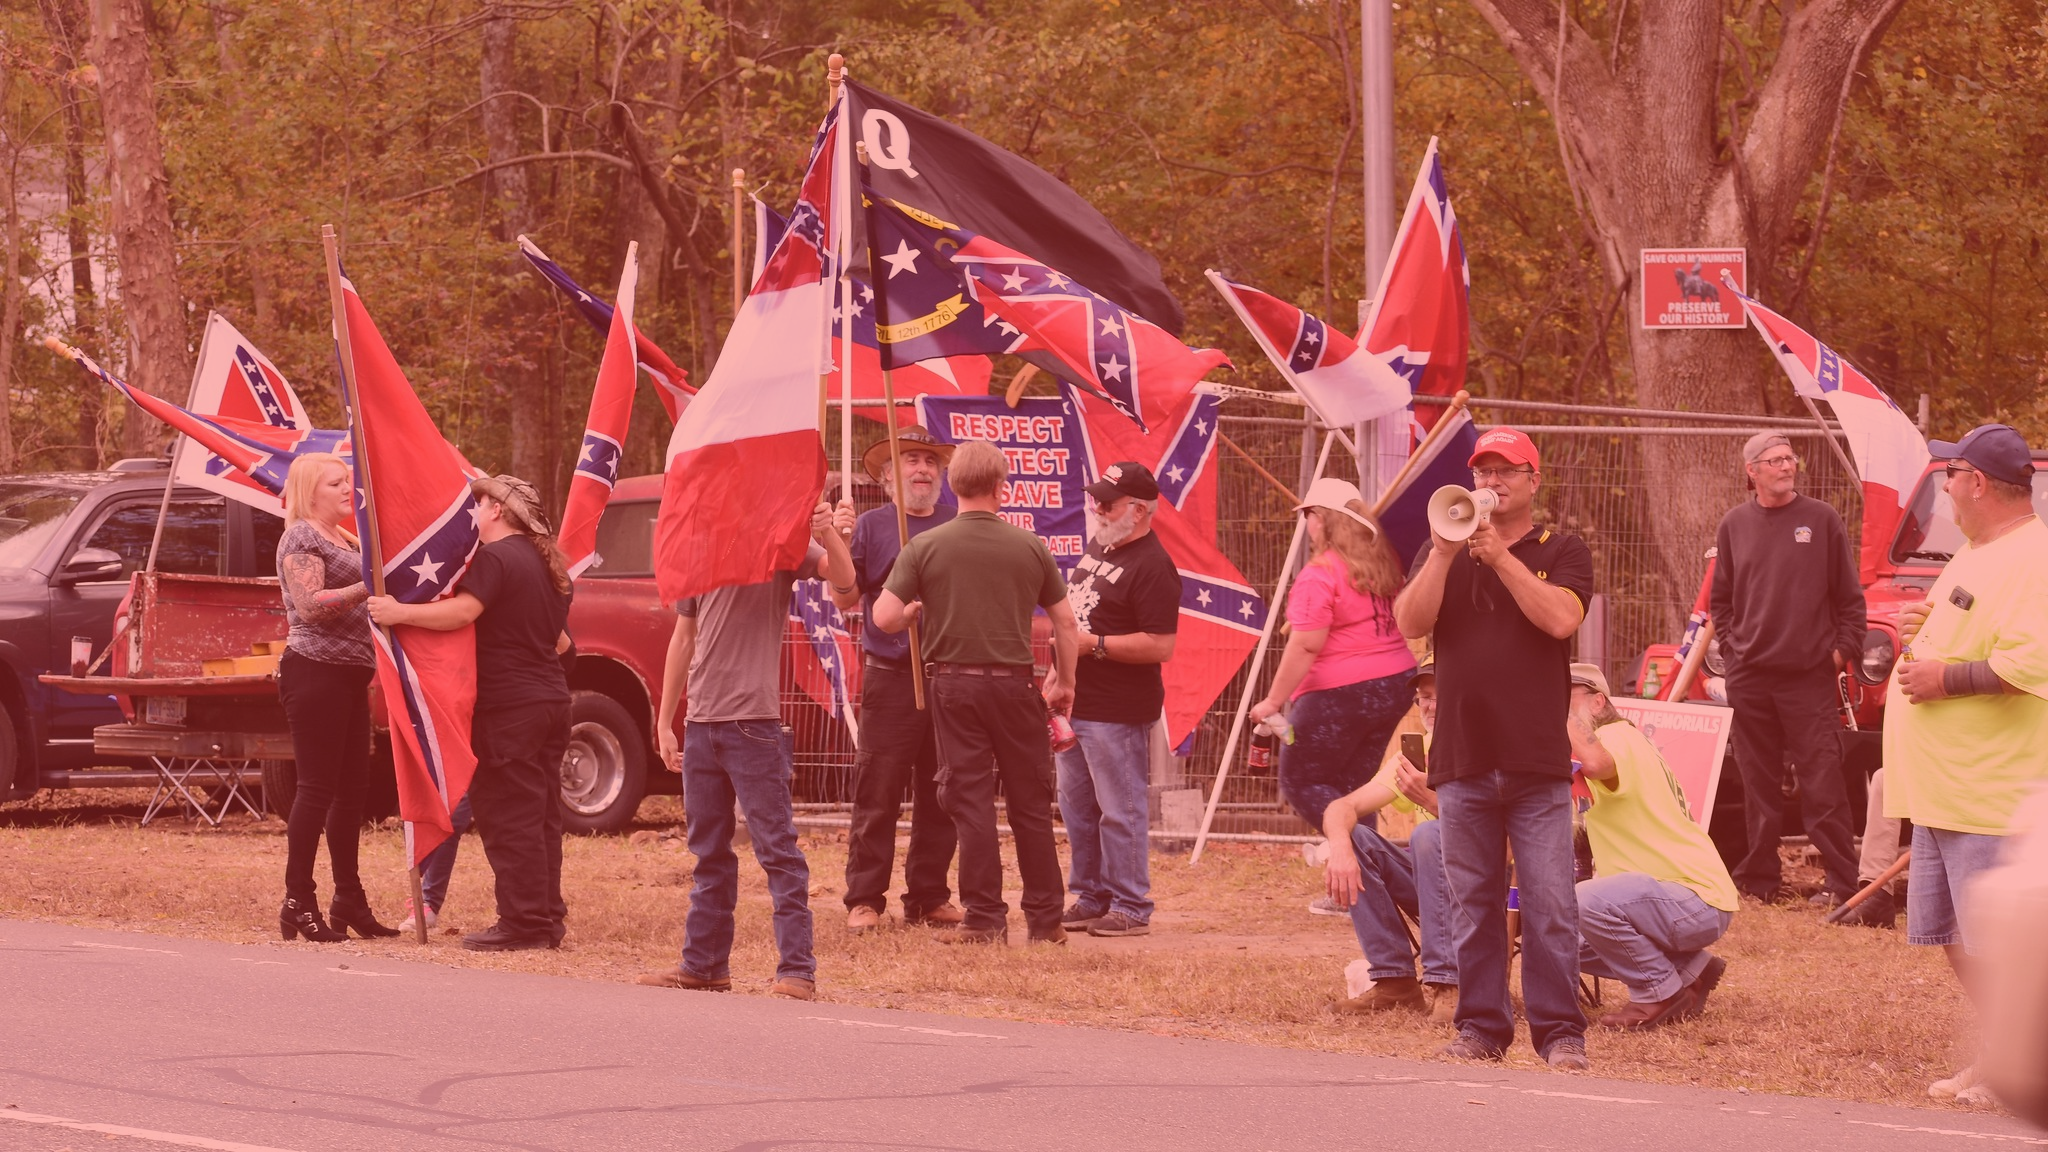 Kathleen Belew – Bring the War Home: The White Power Movement and Paramilitary America